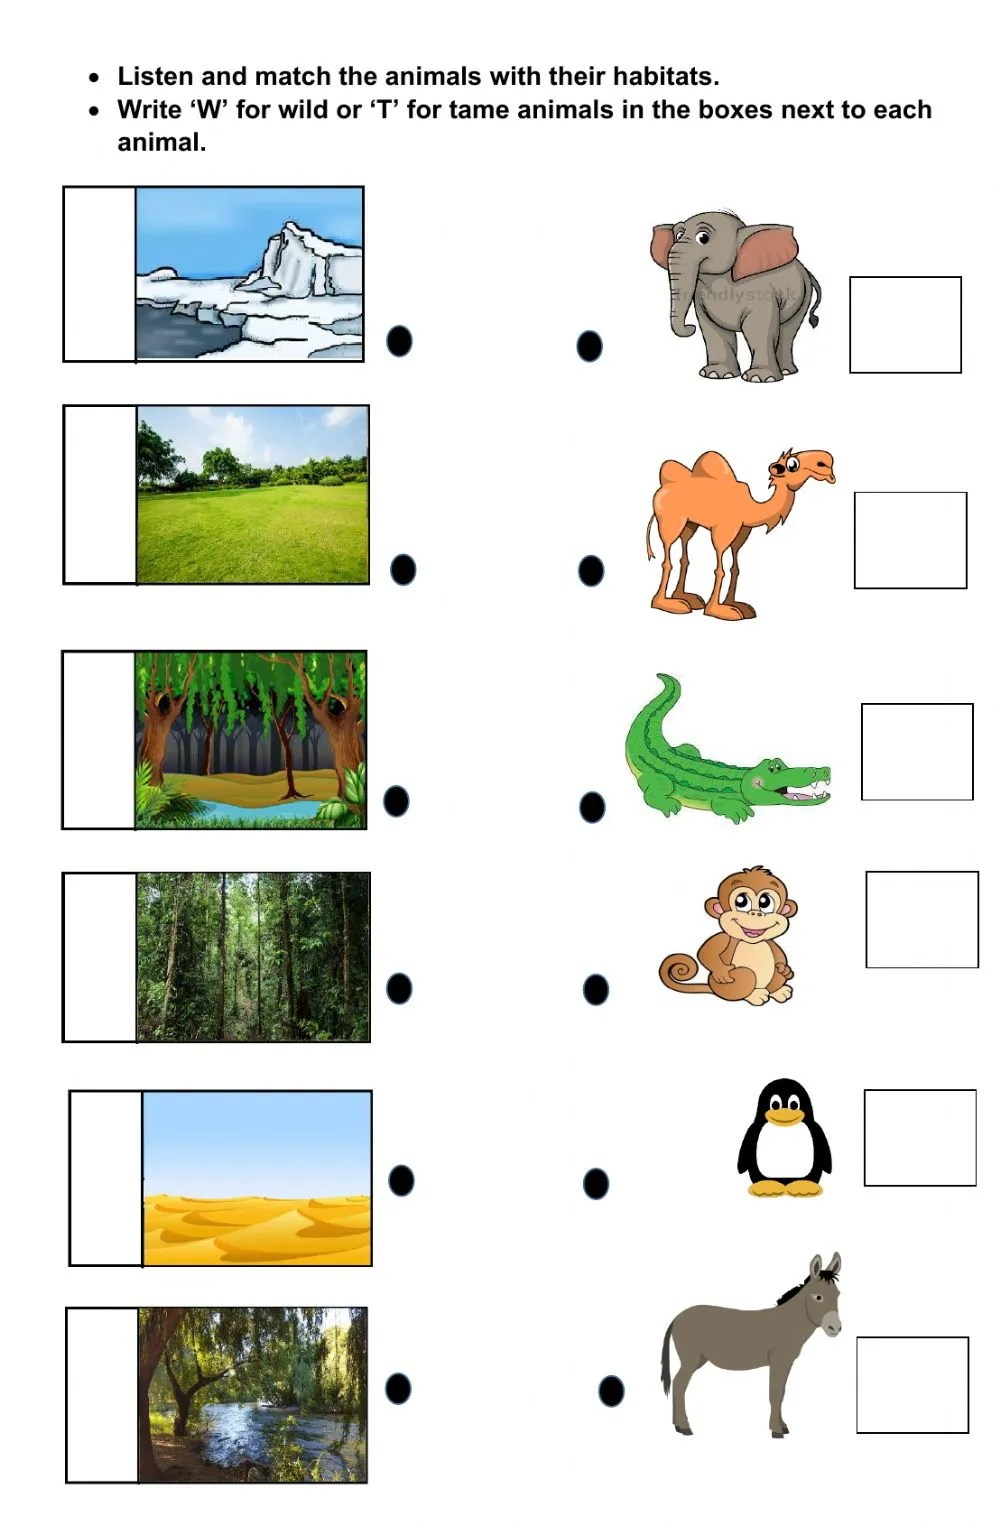 medium resolution of Wild and Tame animal with their sounds and Habitats worksheet